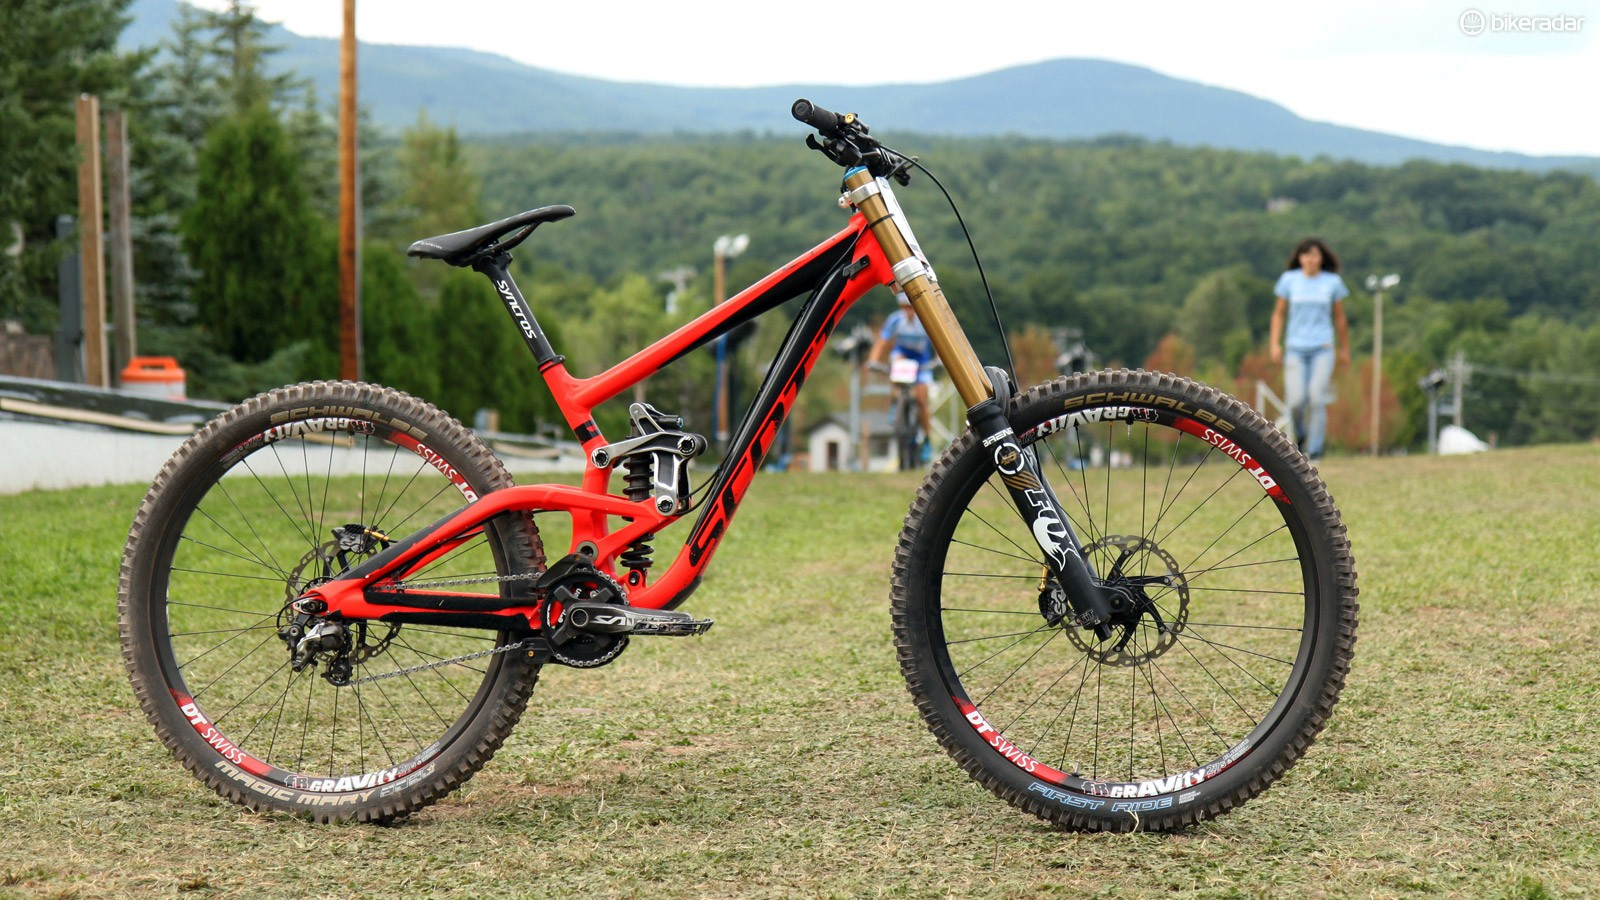 Brendan Fairclough (Gstaadt-Scott) races on a standard large-sized Scott Gambler frame but with a few front-end tweaks to produce the handling characteristics he wants